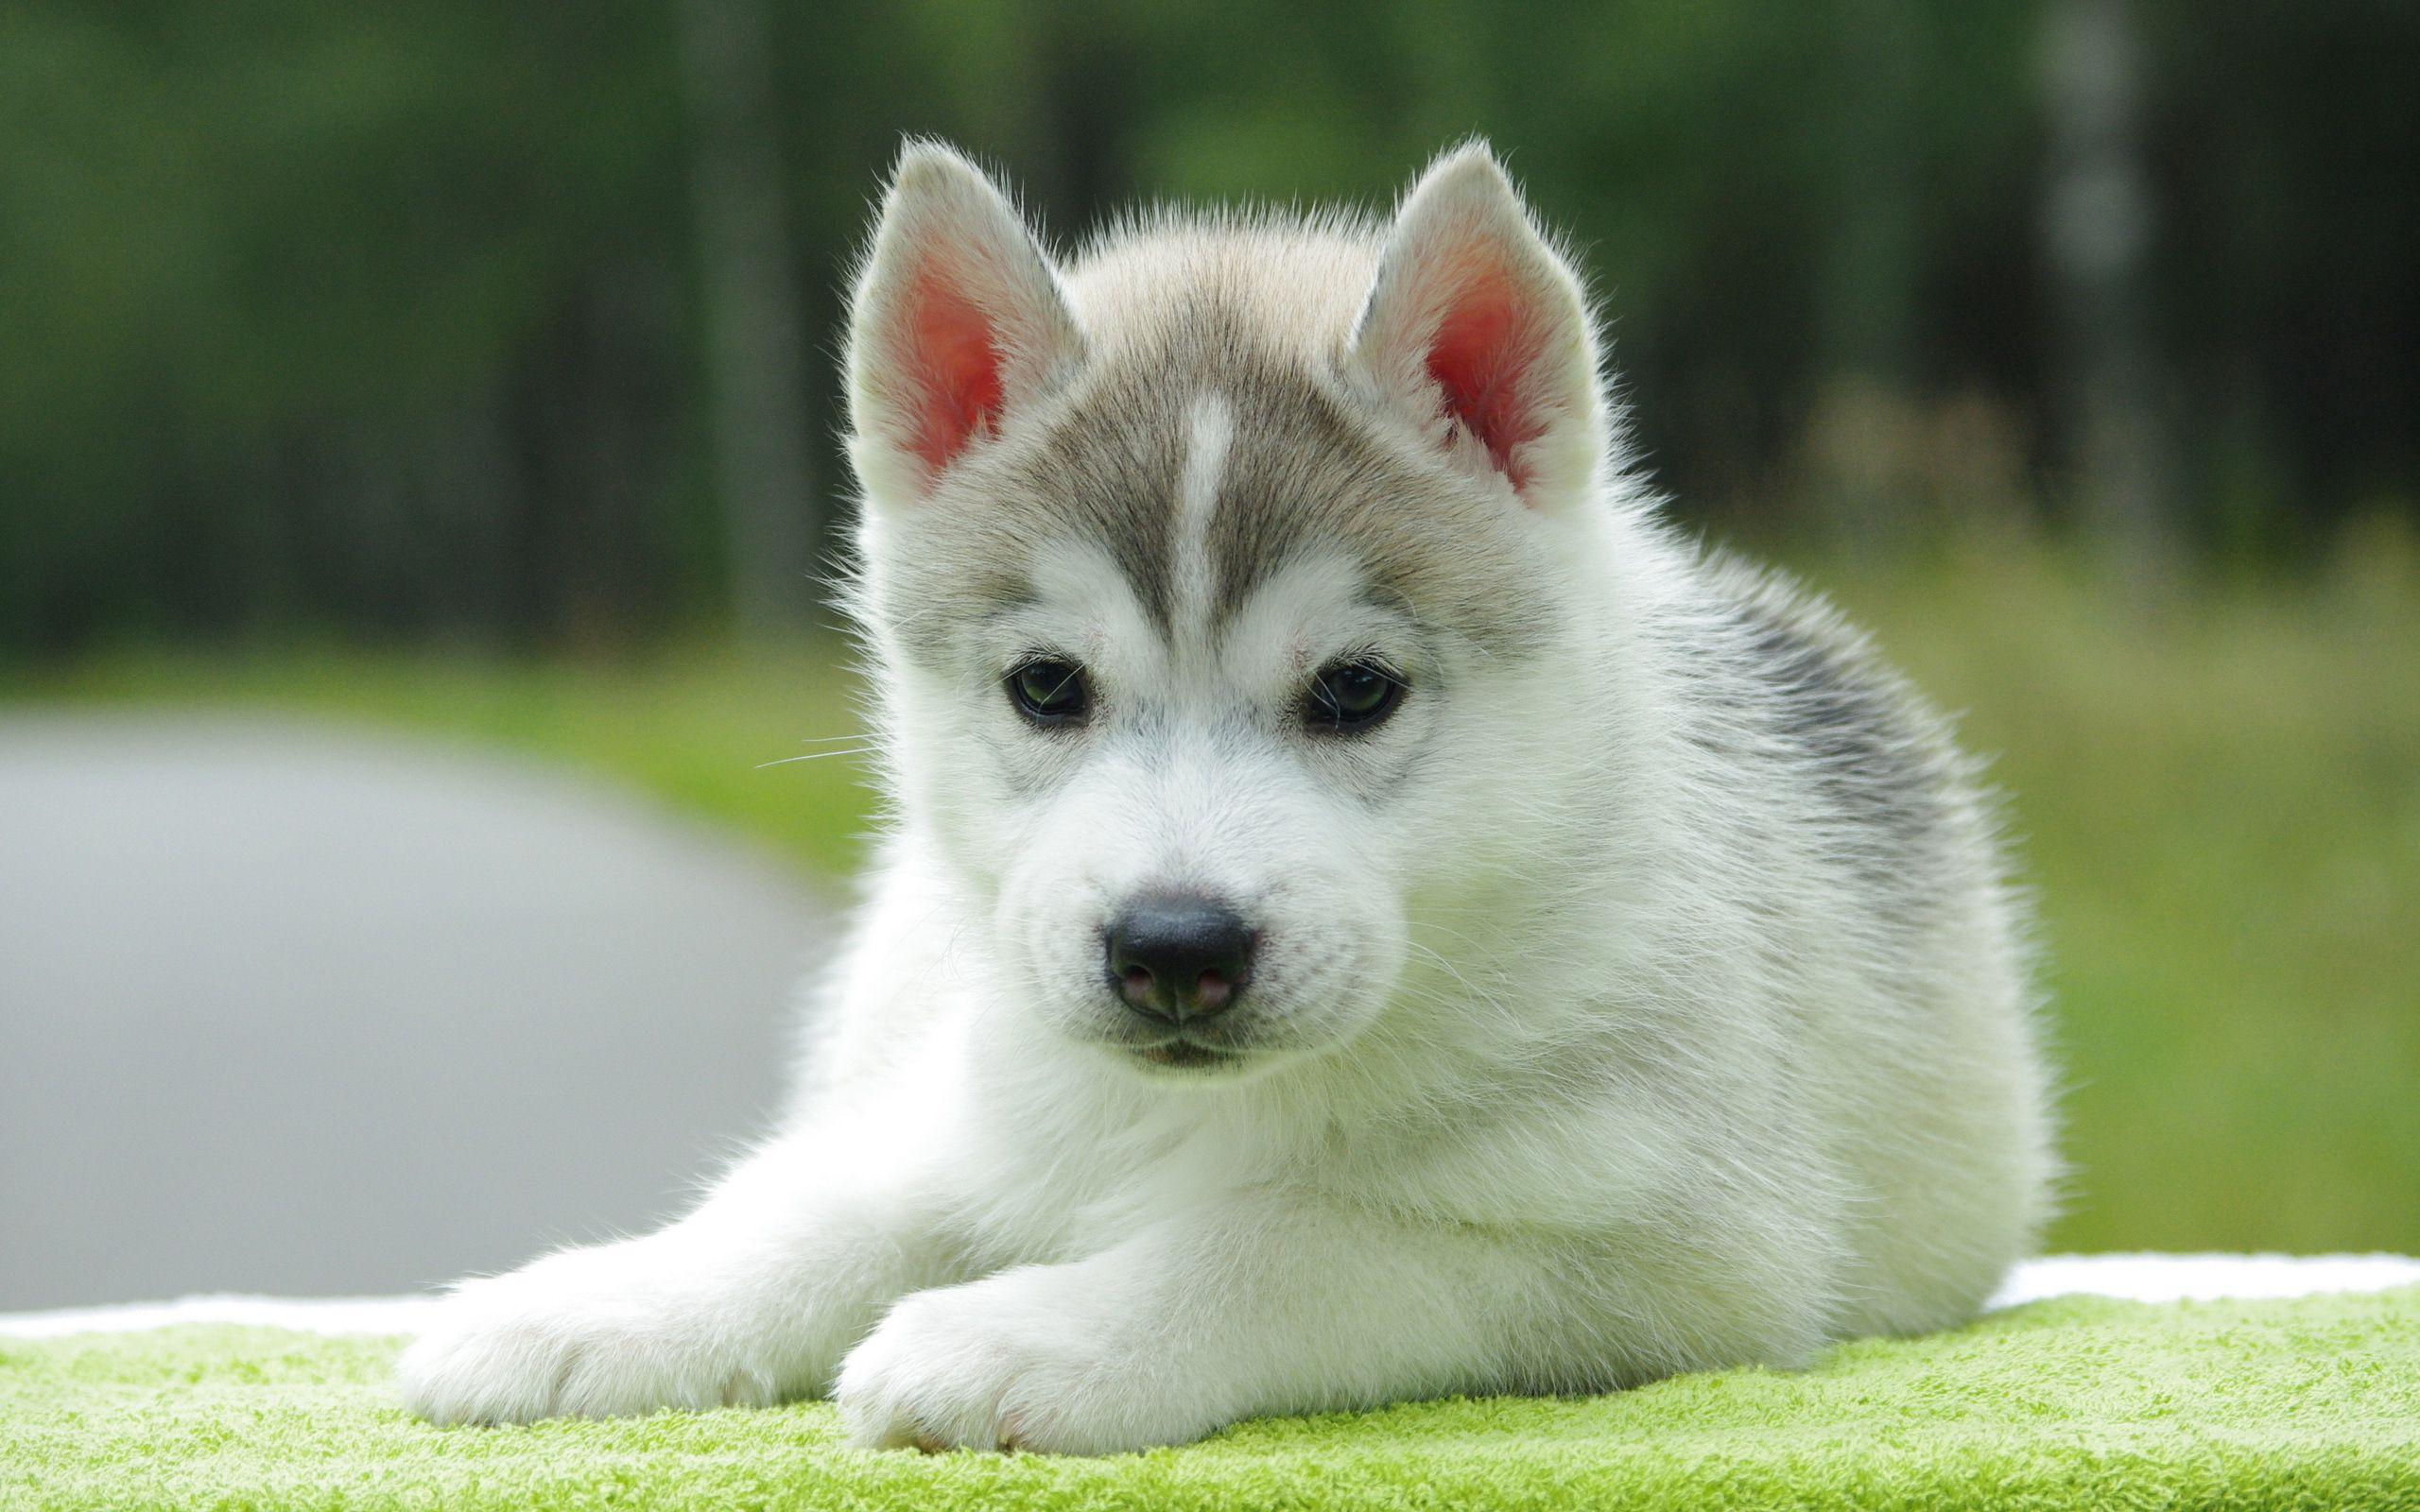 Adorable Puppy Wallpapers Wallpaper Cave